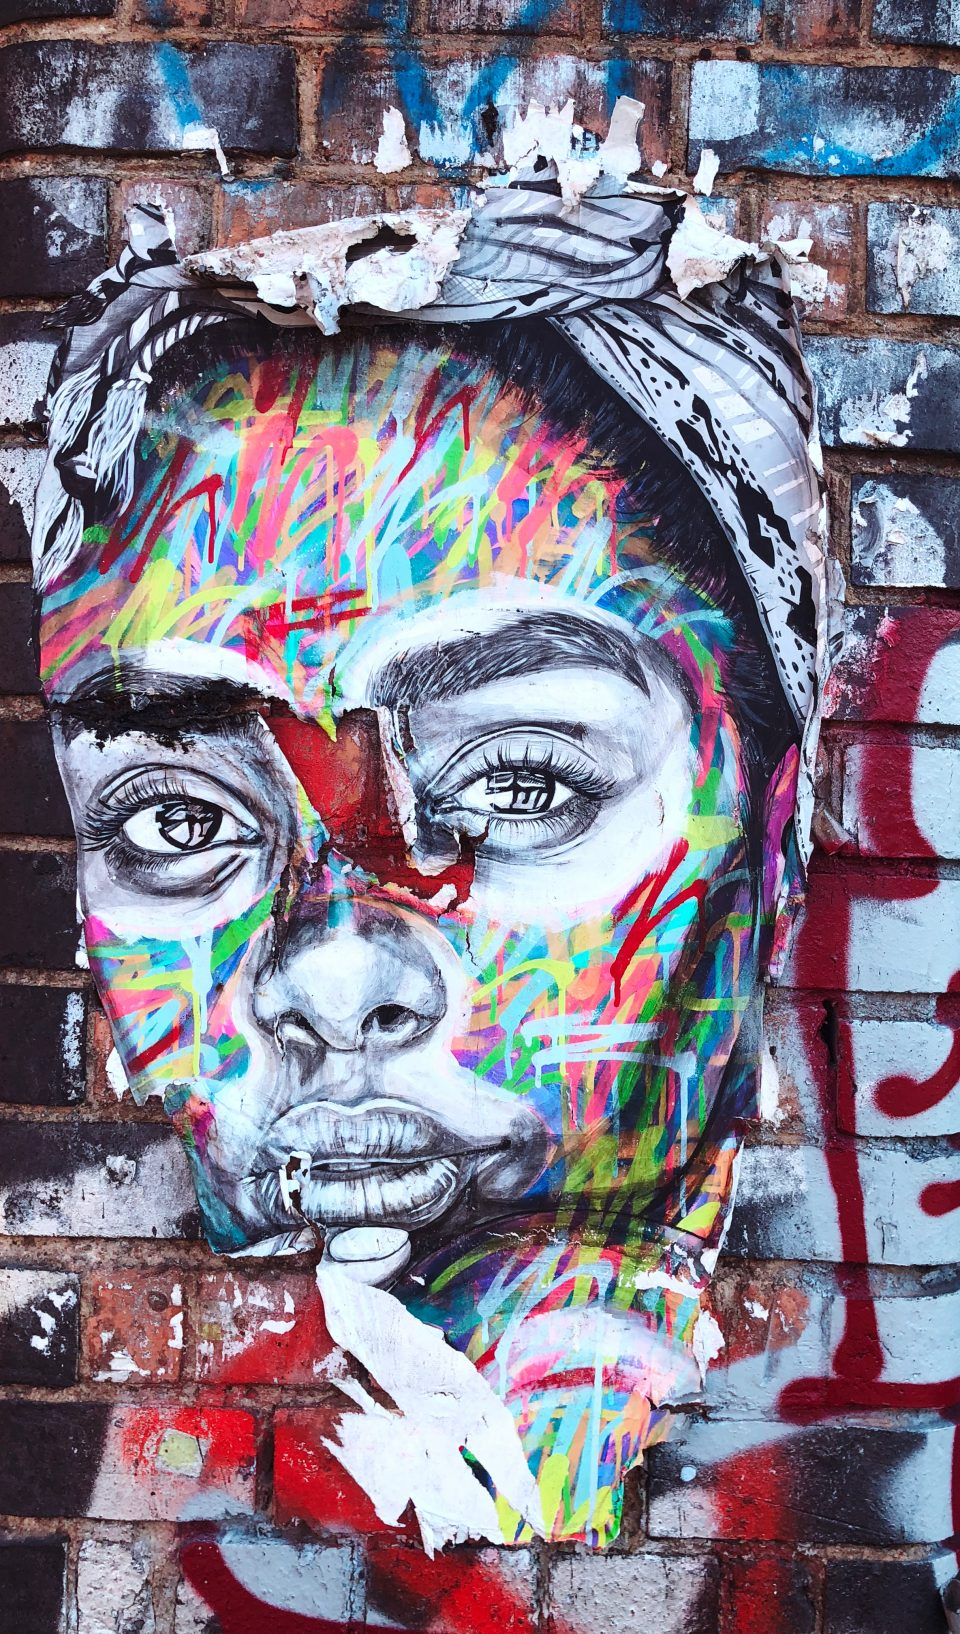 A street art picture of a black woman done in greyscale, and painted over with various colors. The wall itself seems to be crowded with many pieces of art.